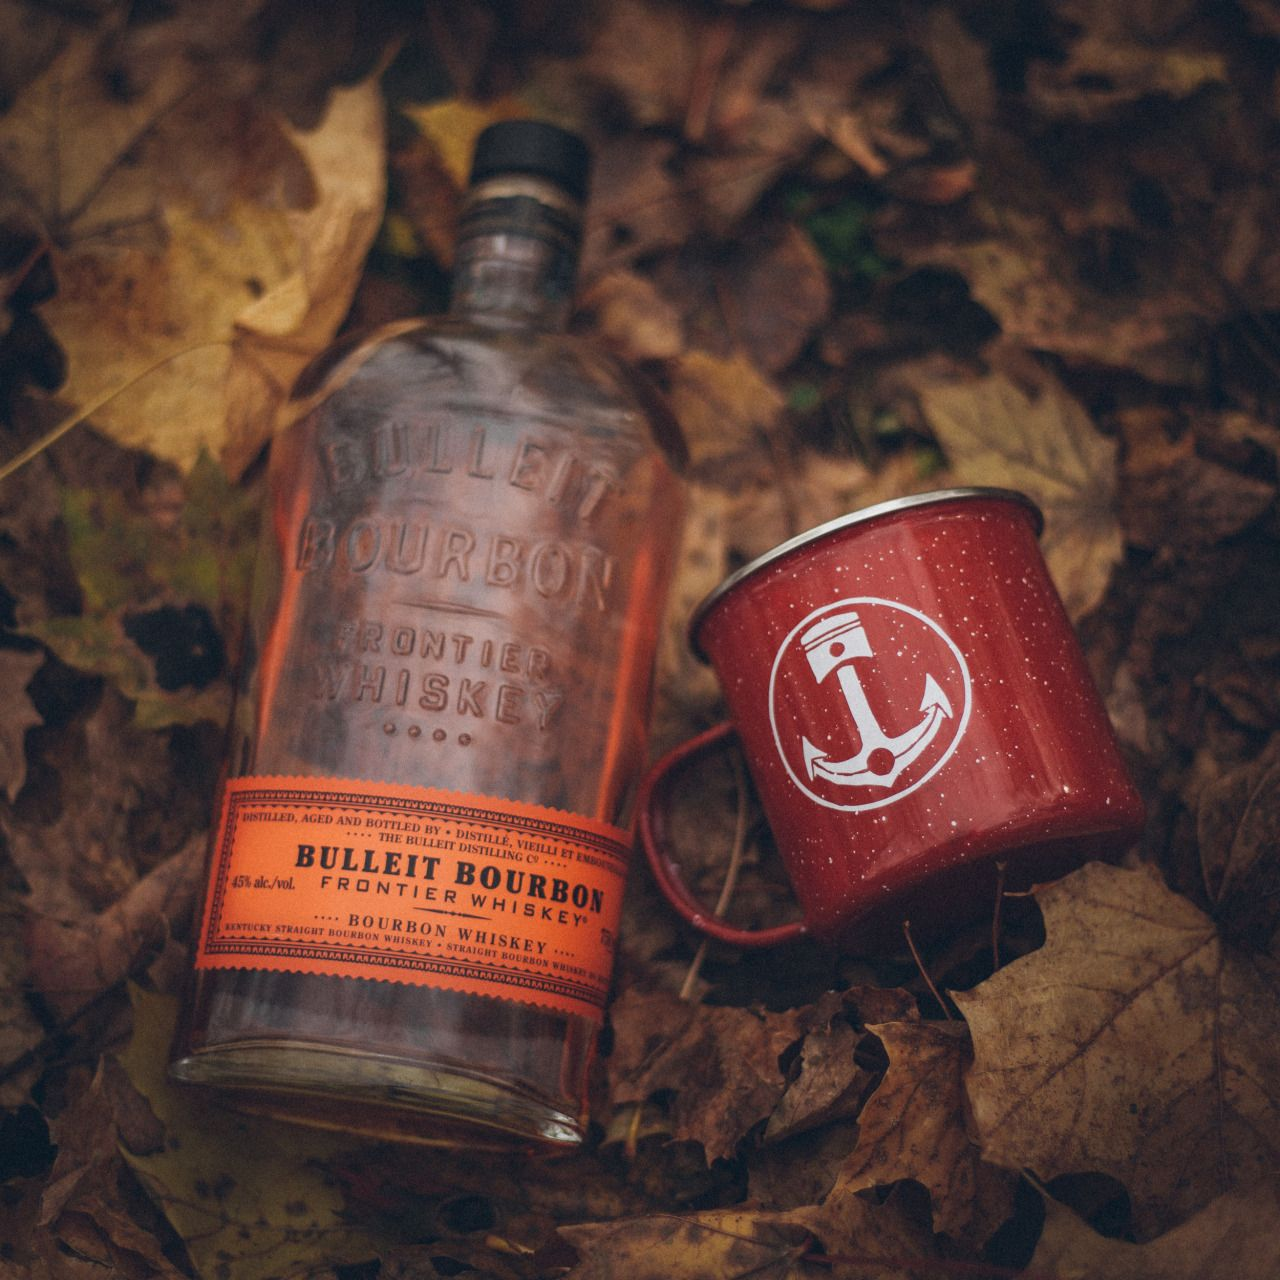 Bourbon Whiskey Bulleit Whiskey Bulleit Bourbon Cigars And Whiskey